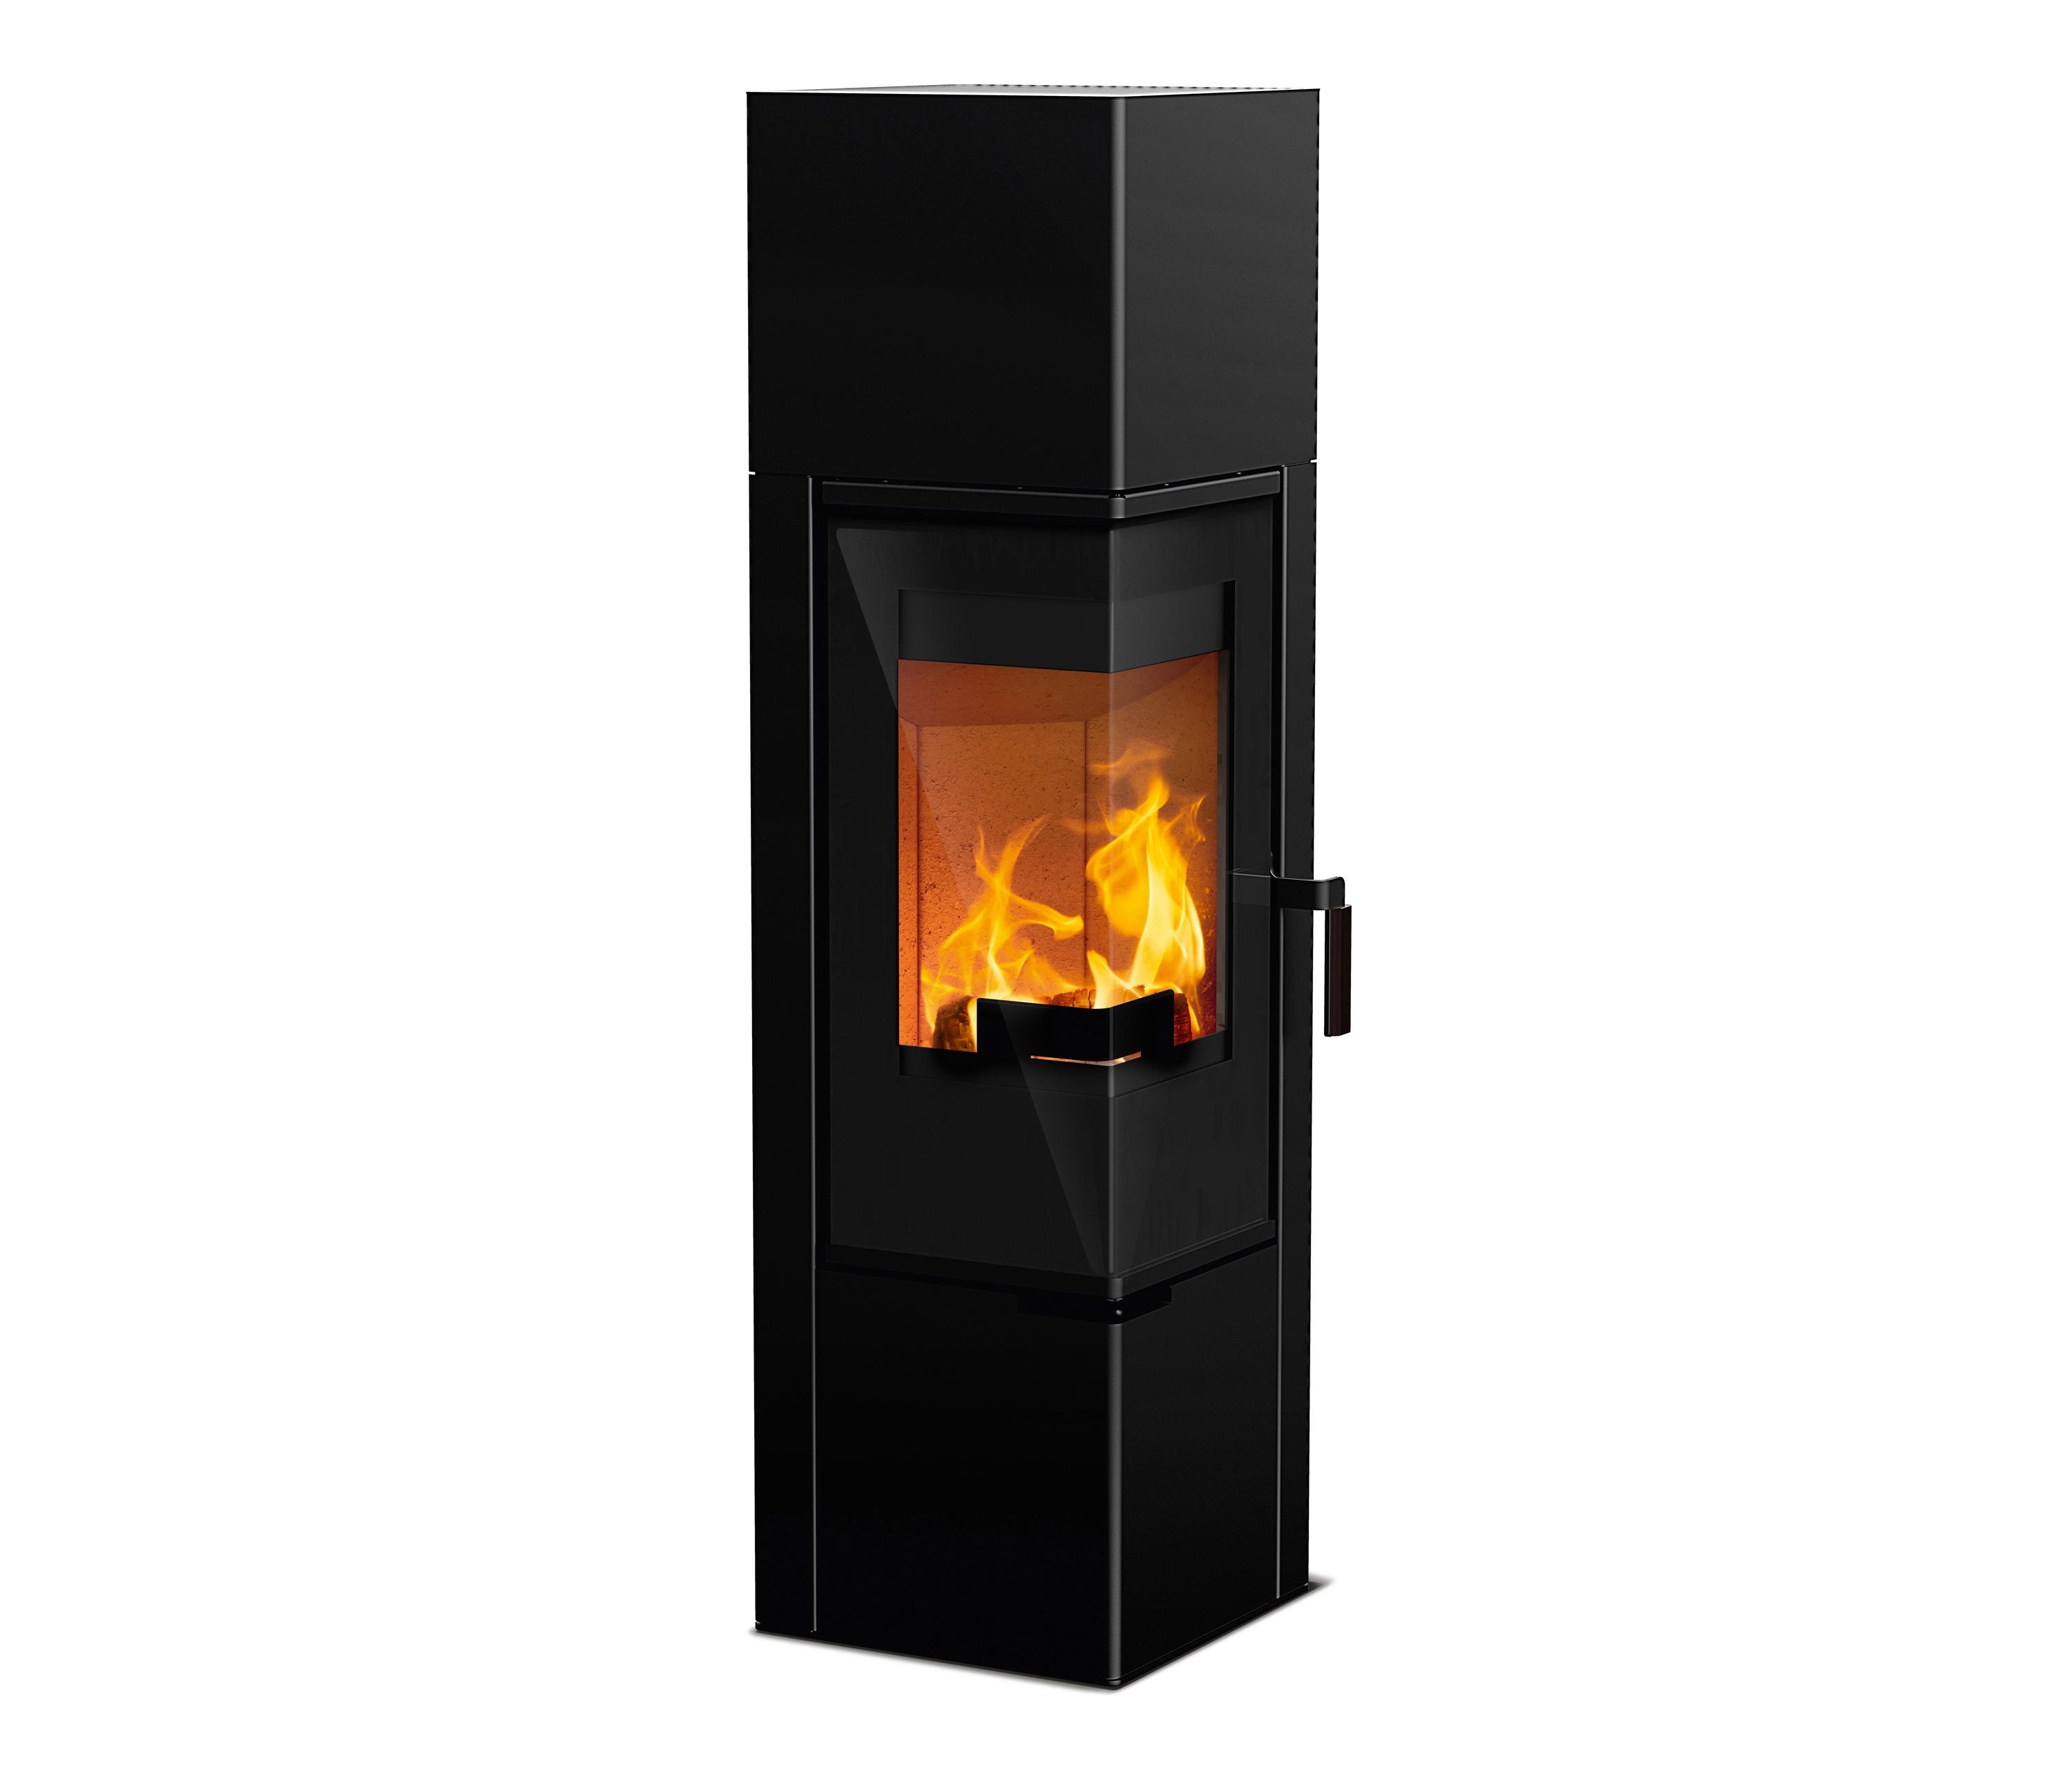 FORMA - Stoves from Rika | Architonic